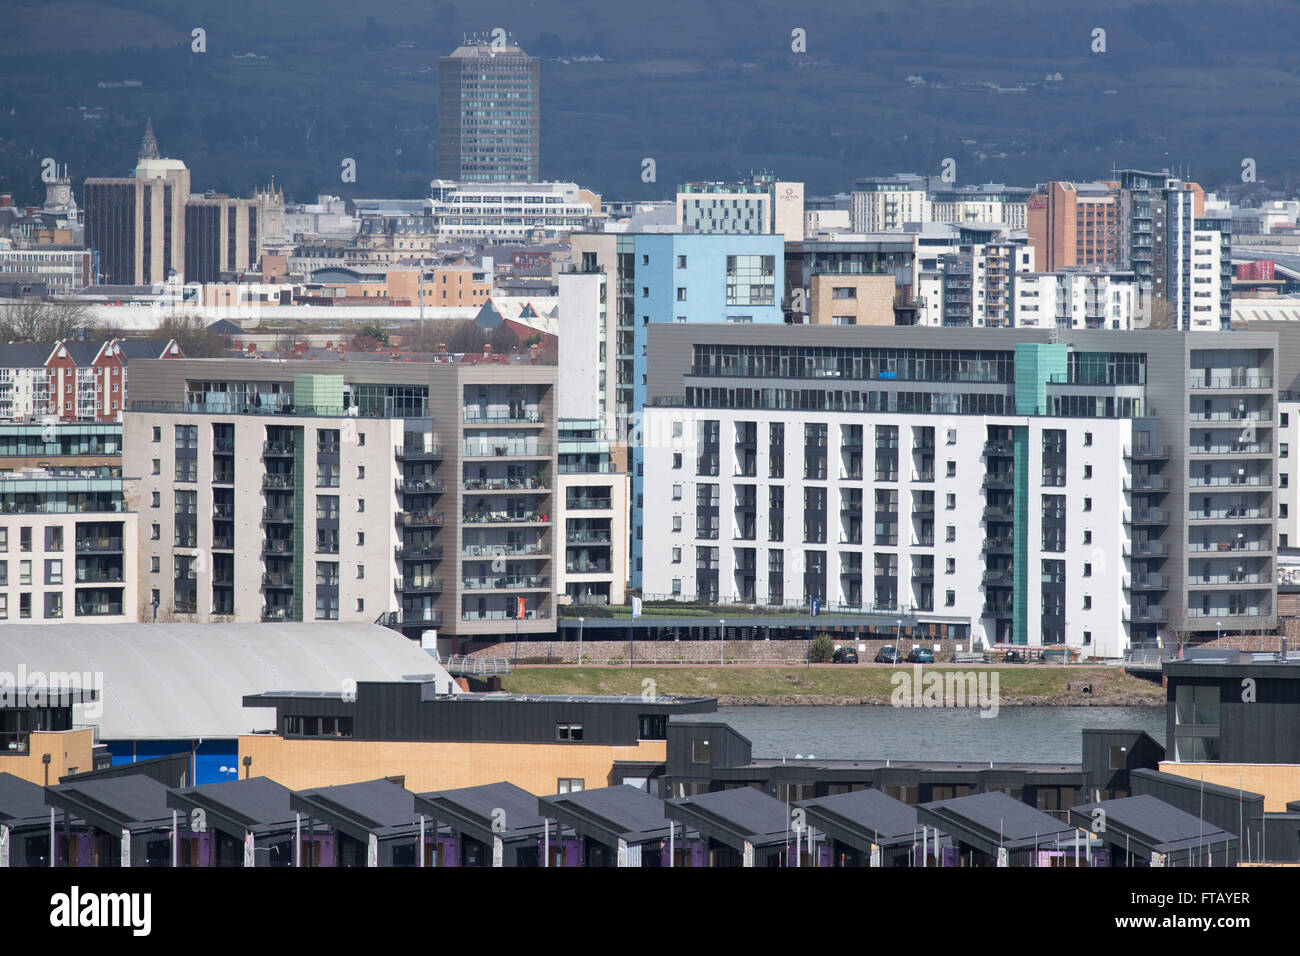 New build apartments in Cardiff Bay, south Wales. - Stock Image